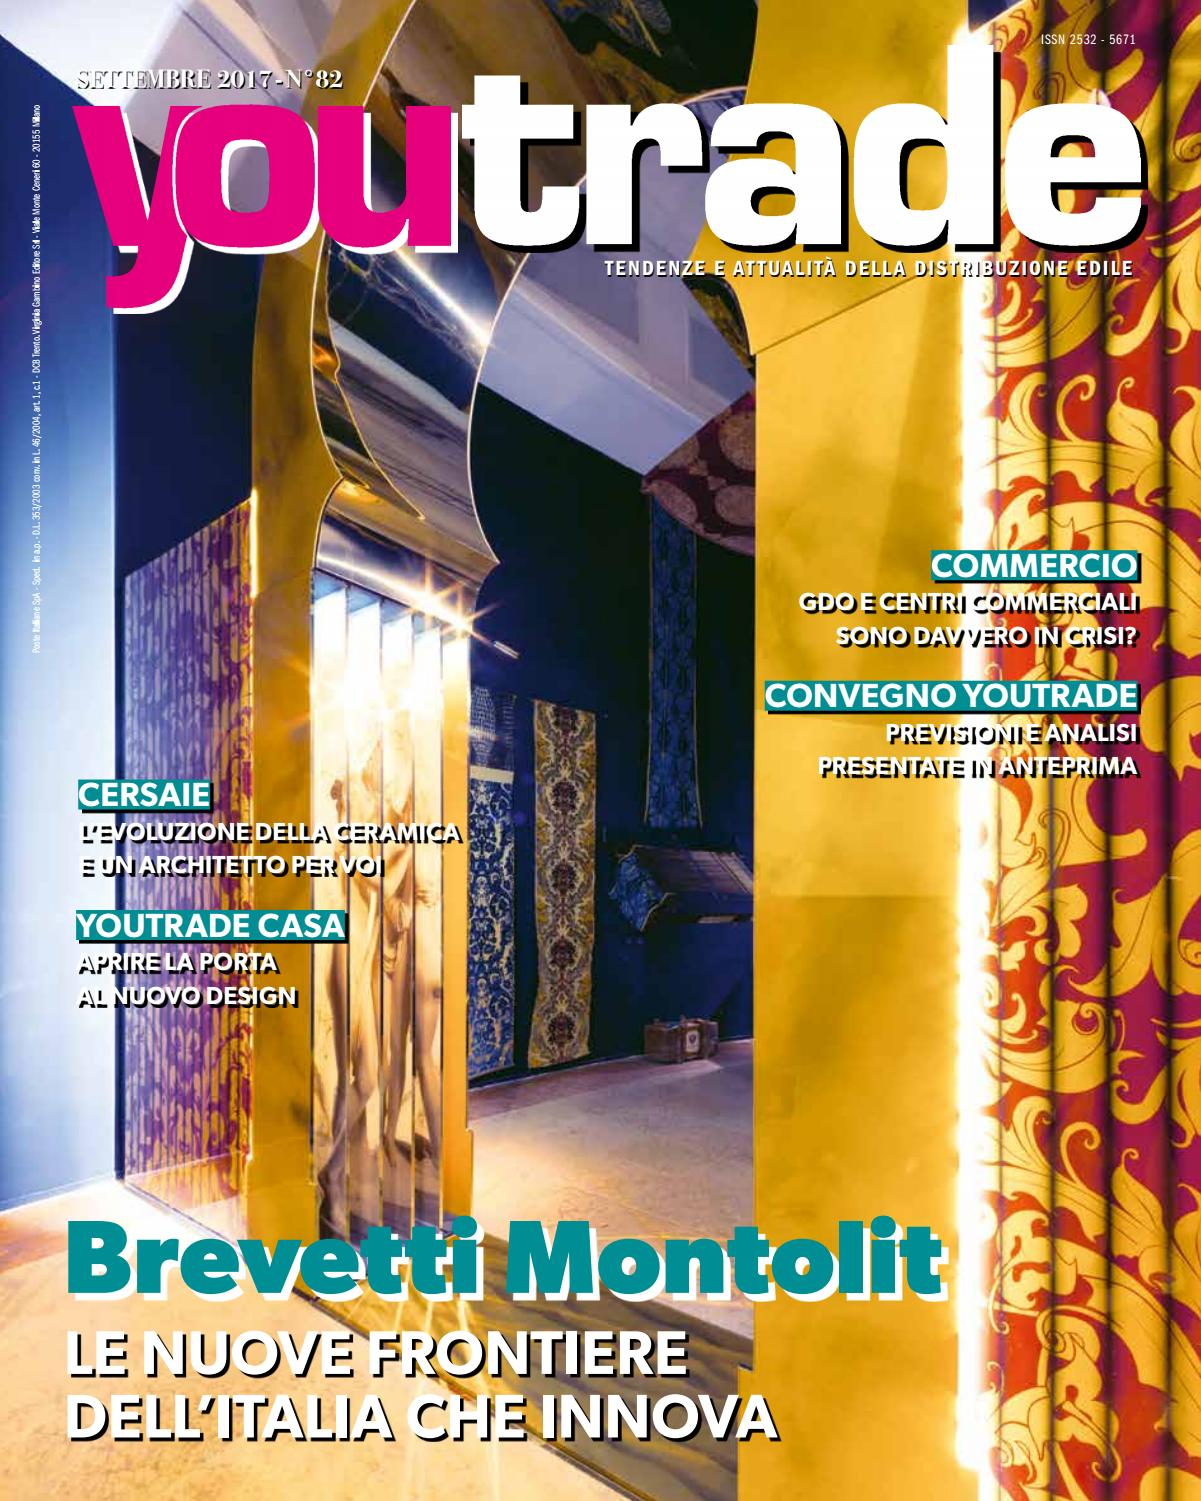 YouTrade settembre 2017 by Virginia Gambino Editore Srl - issuu 45f1a6d2c504